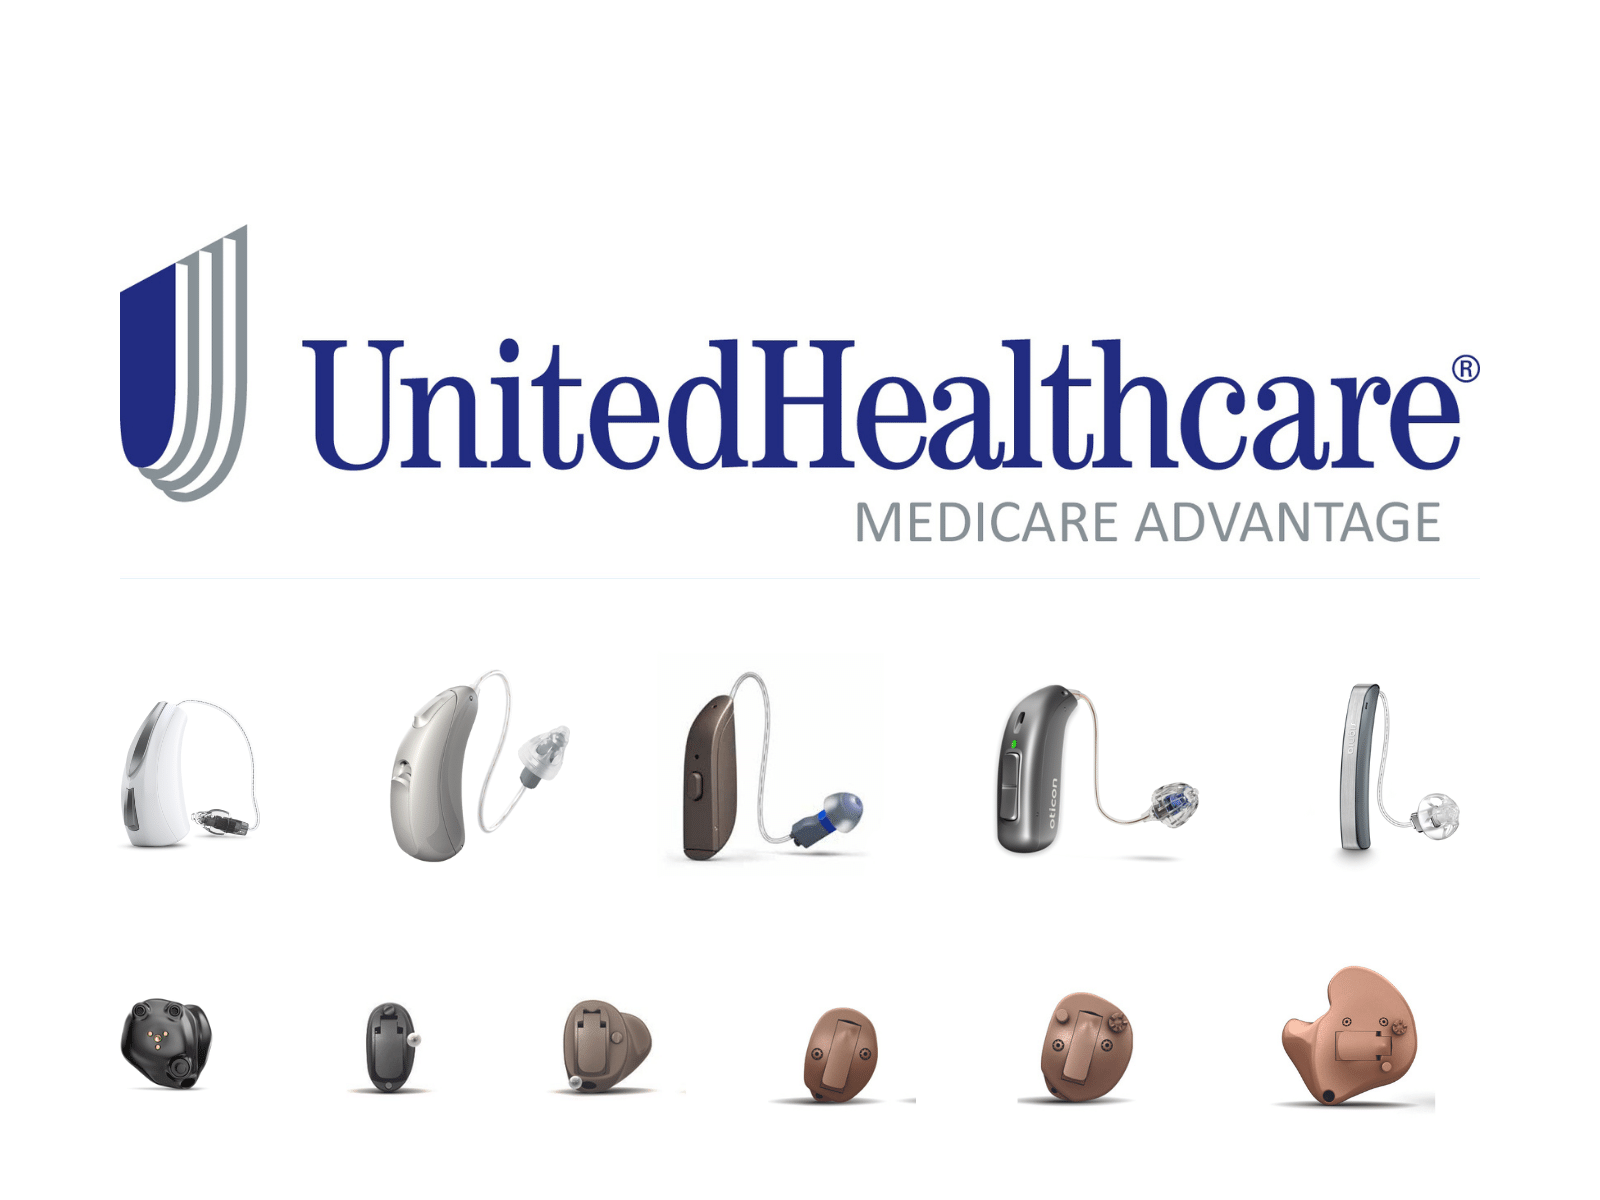 hearing aid prices for united healthcare medicare advantage